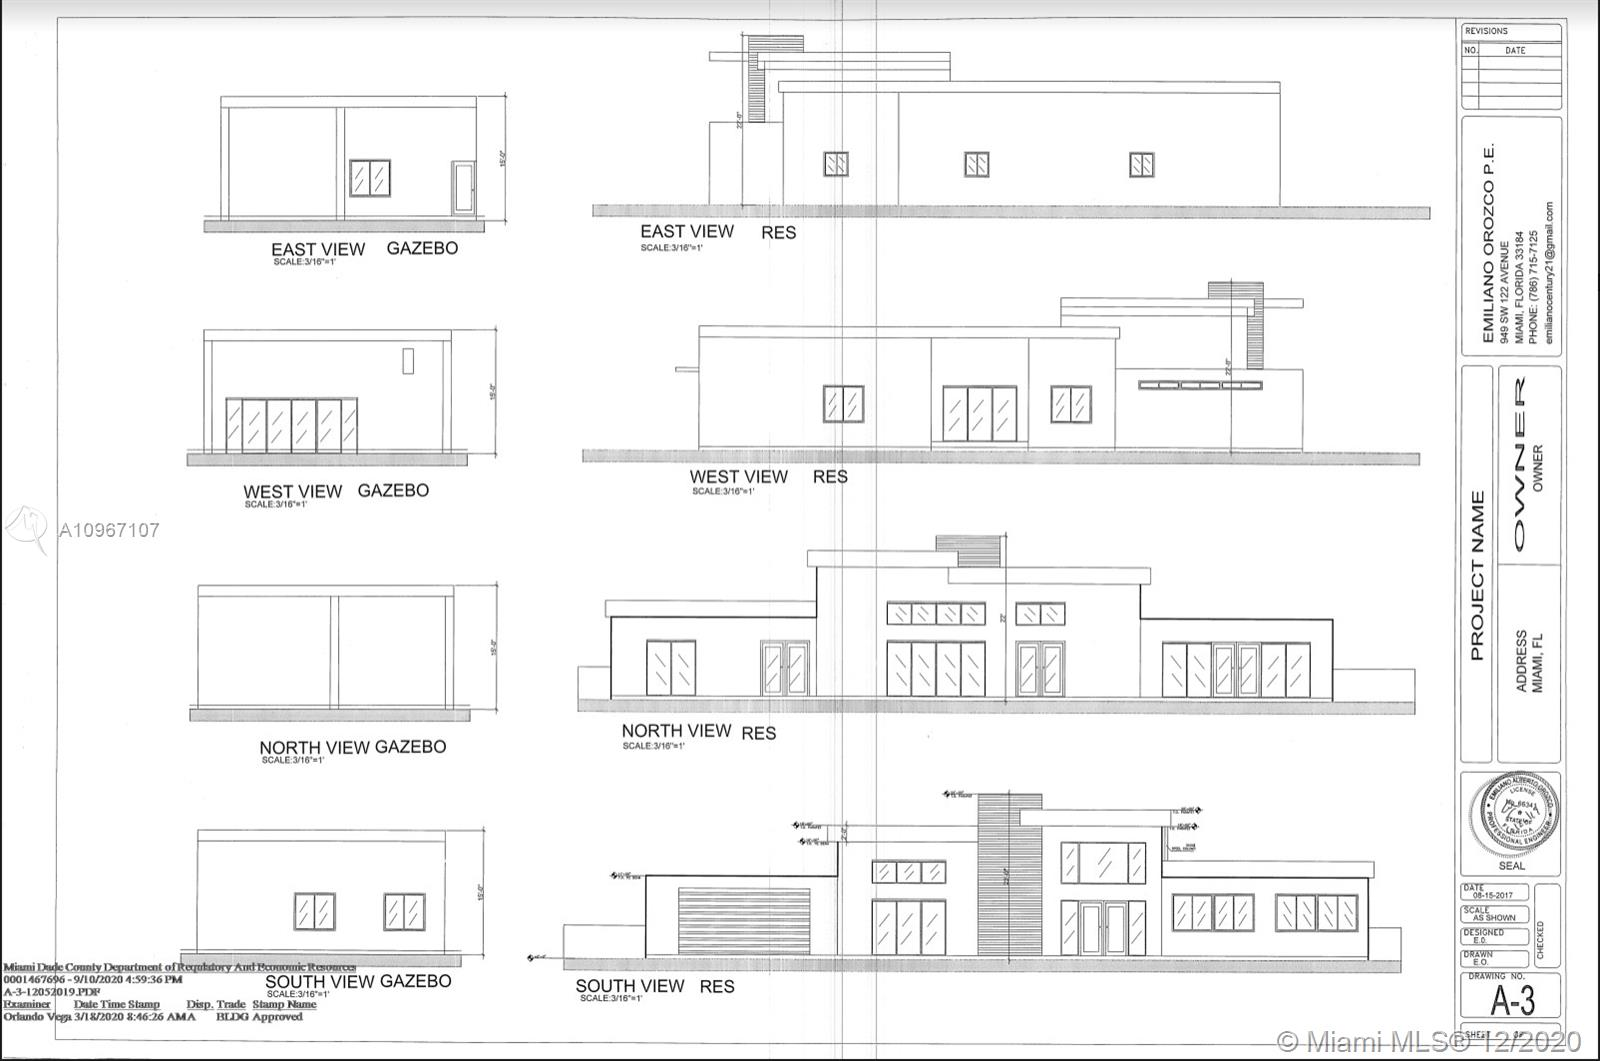 Details for 11220 95th St, Miami, FL 33176